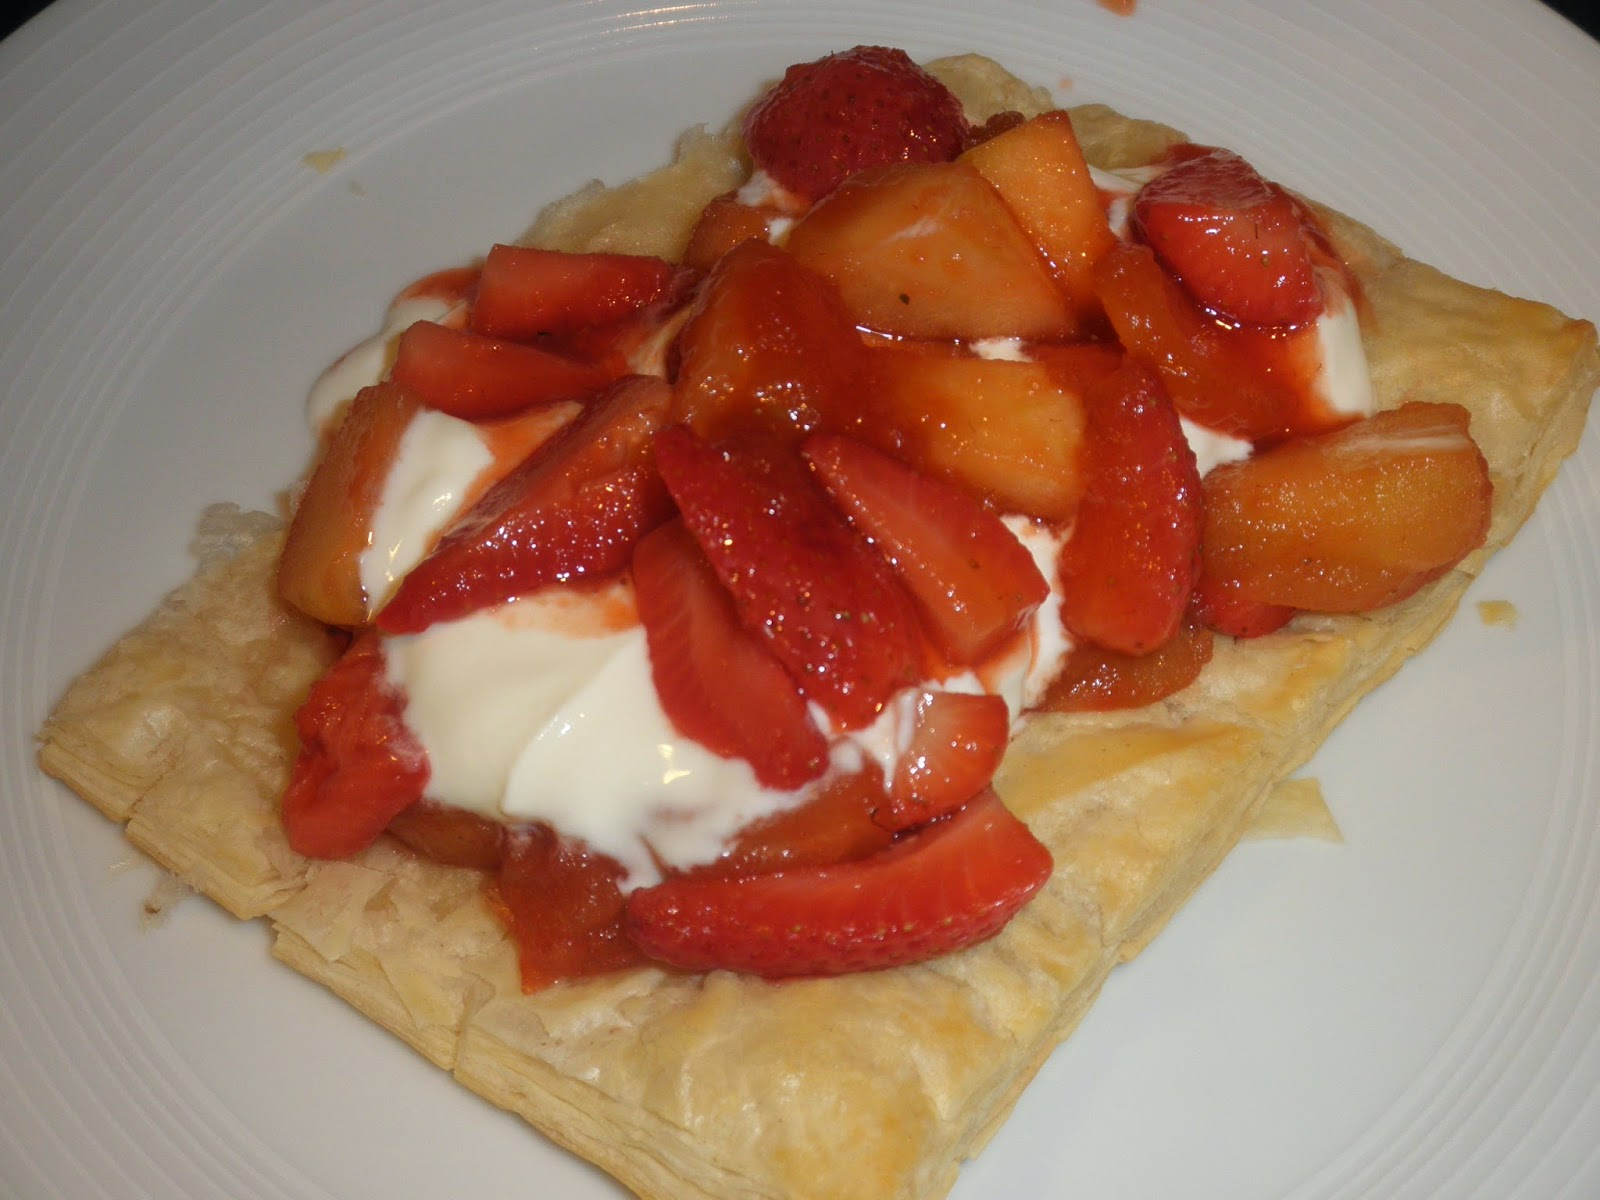 Apple & strawbrry compote